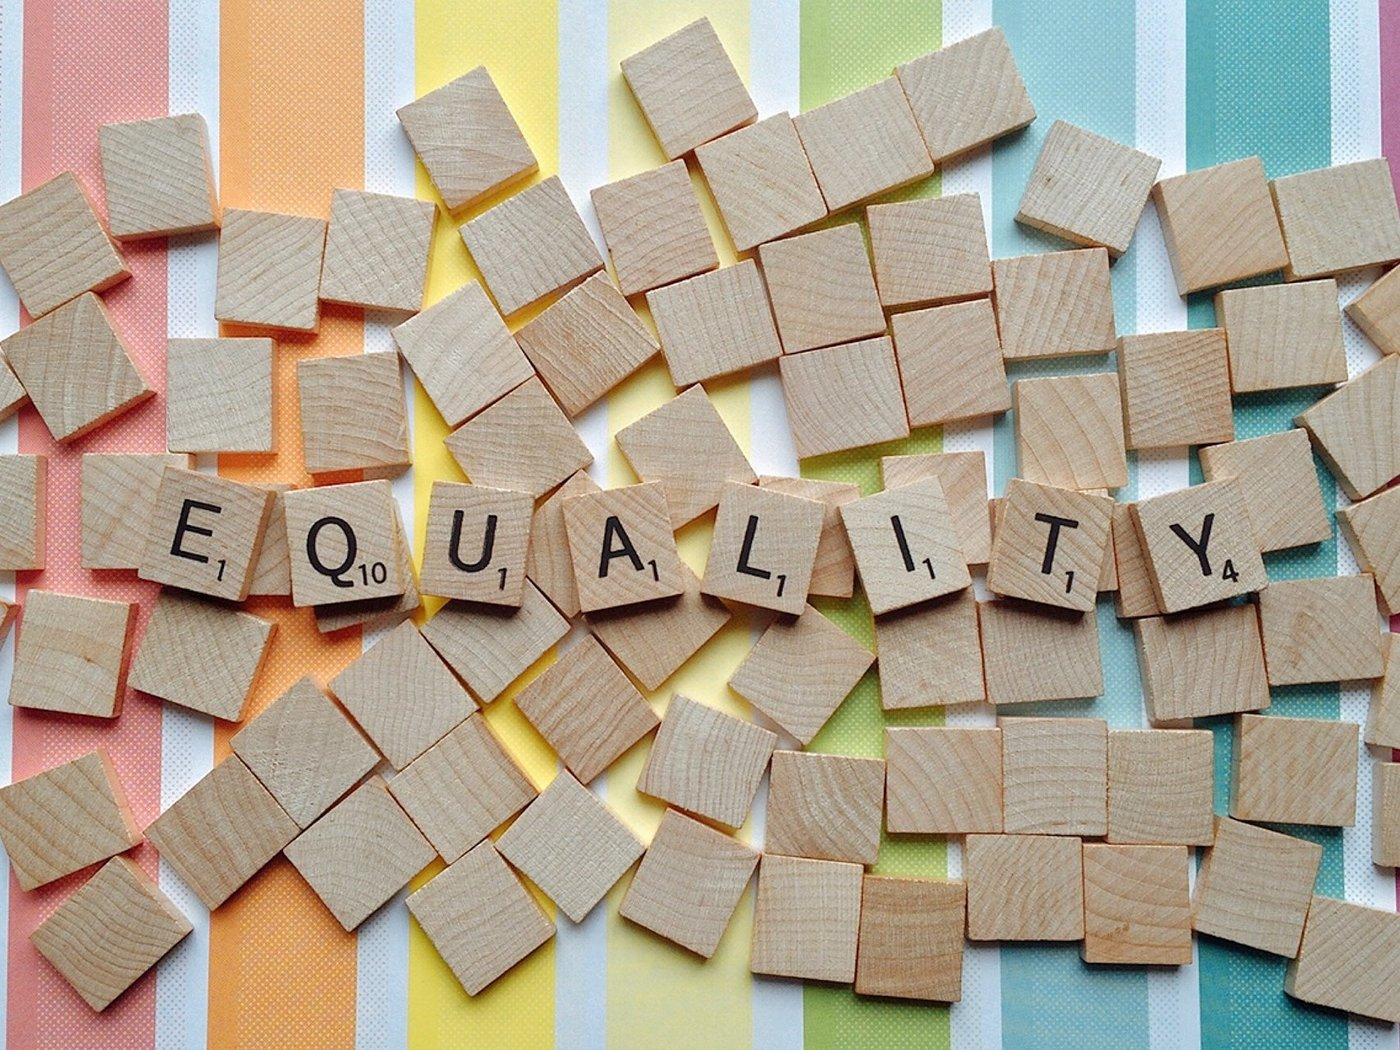 Scrabble tiles spelling out the word 'equality', on a pile on blank tiles on top of a rainbow stripe background